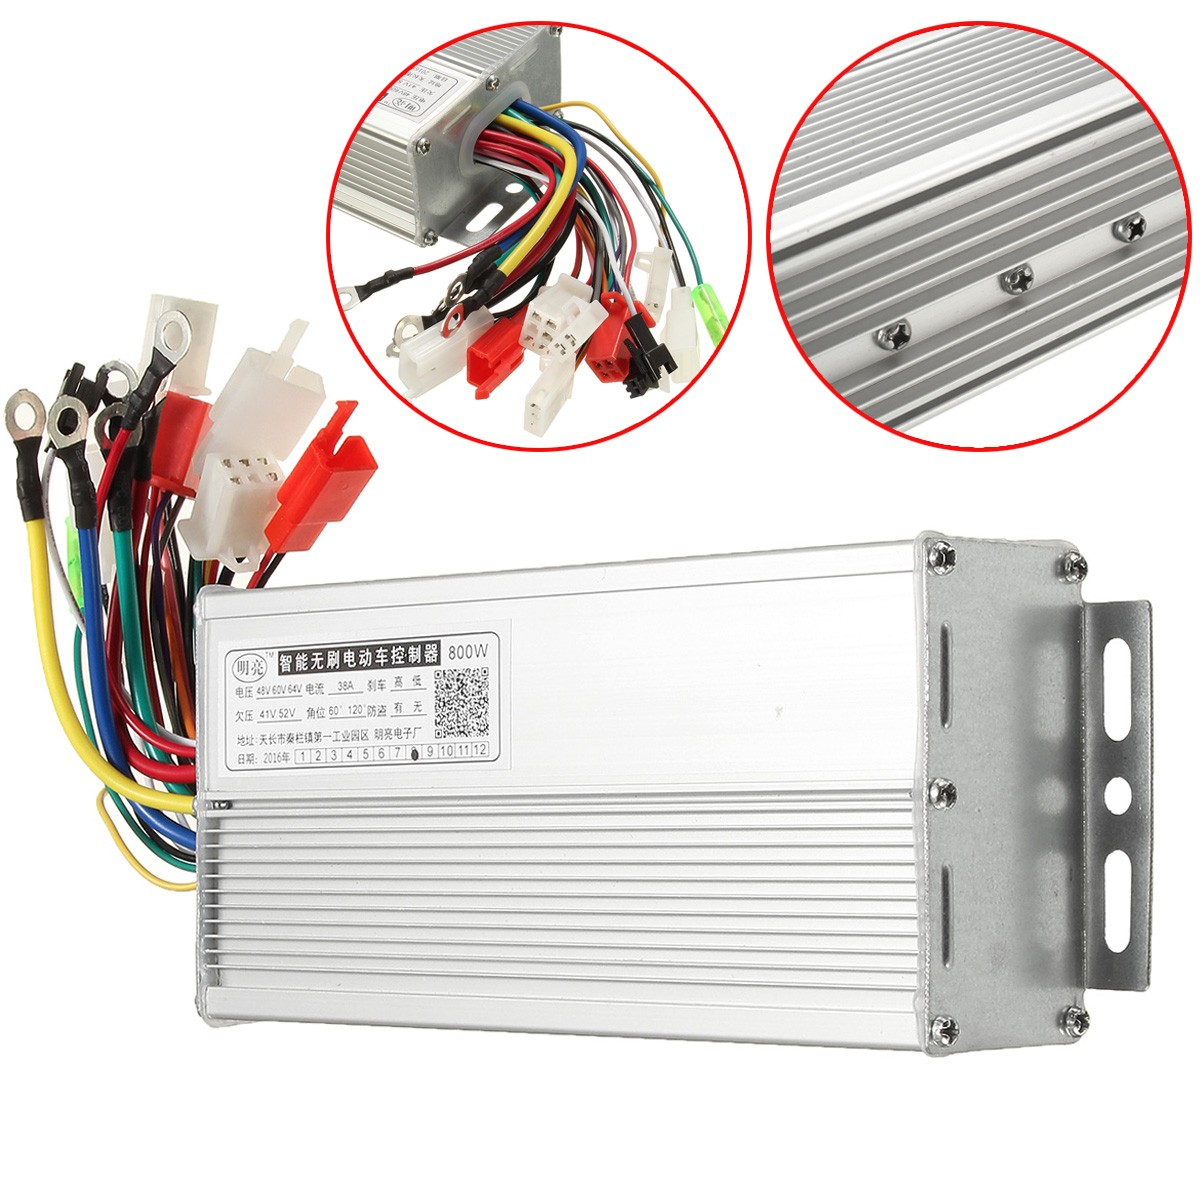 48V to 64V 800W Electric Bicycle E-bike Scooter Brushless DC Motor Speed Controller